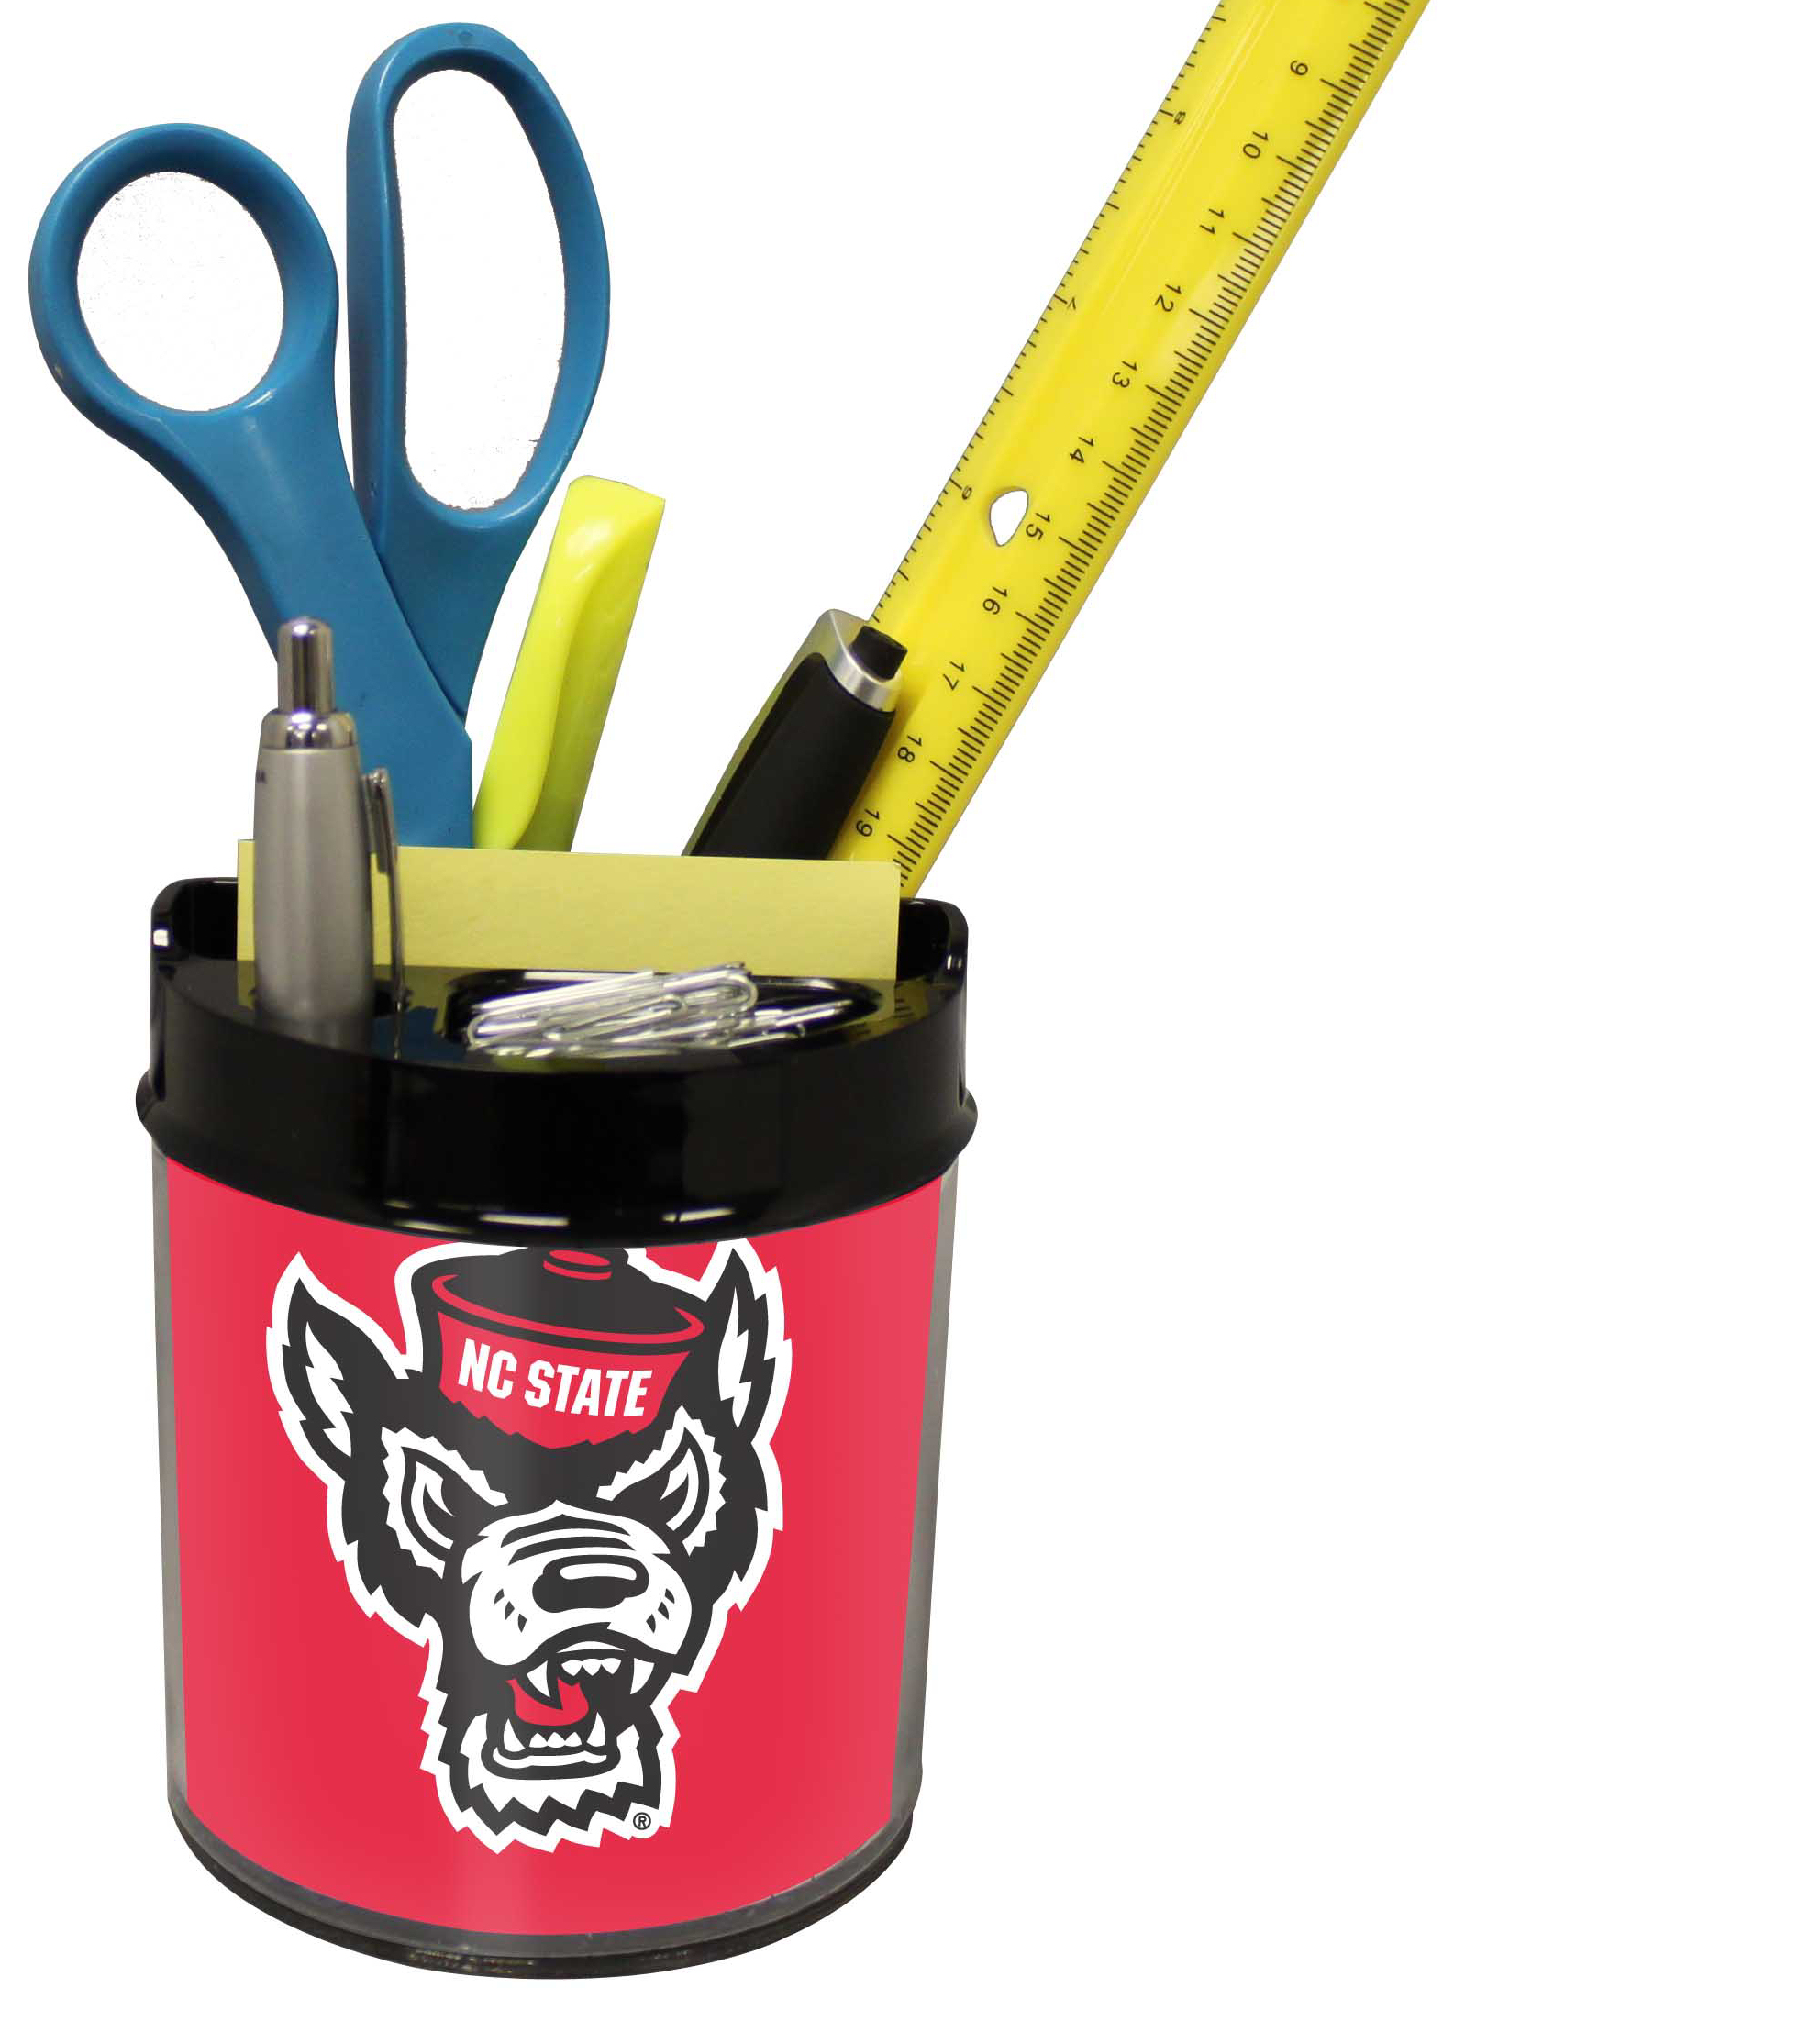 North Carolina State Wolfpack Small Desk Caddy